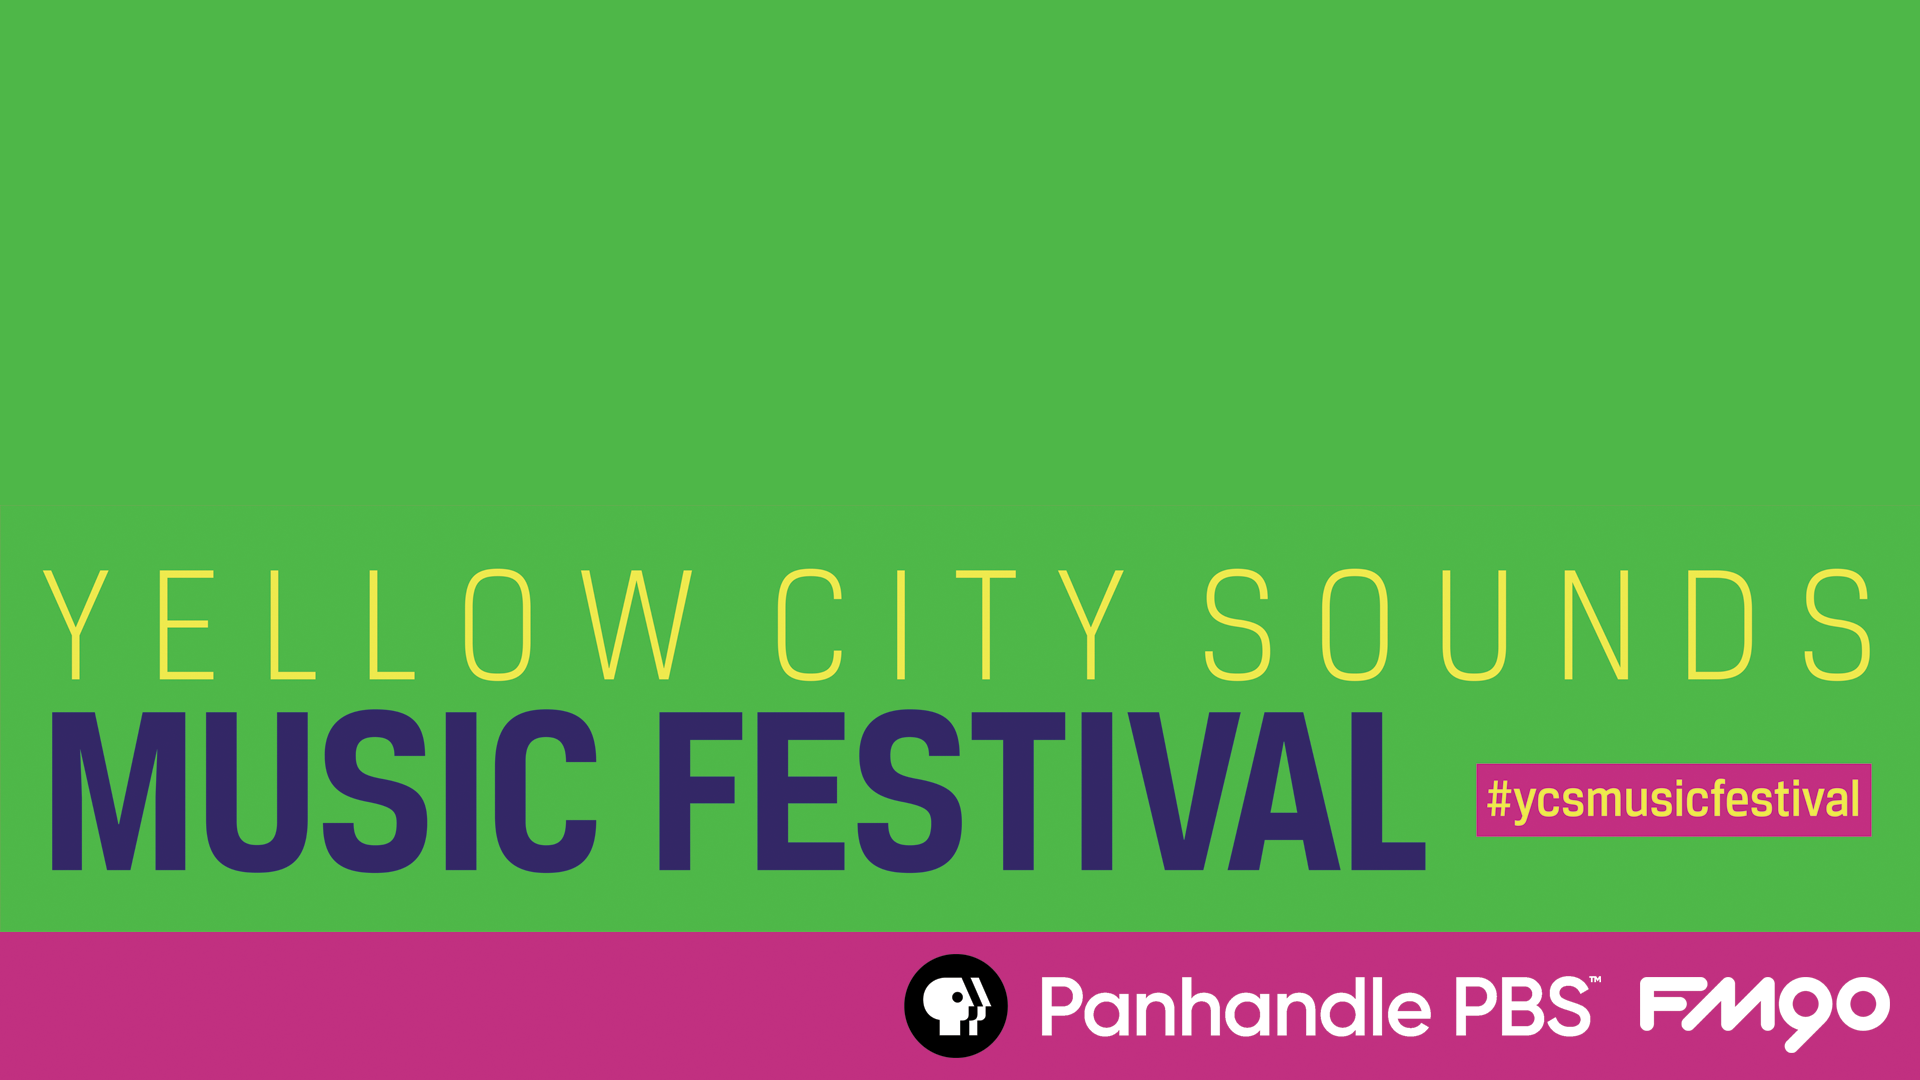 yellow city sounds music festival 2018